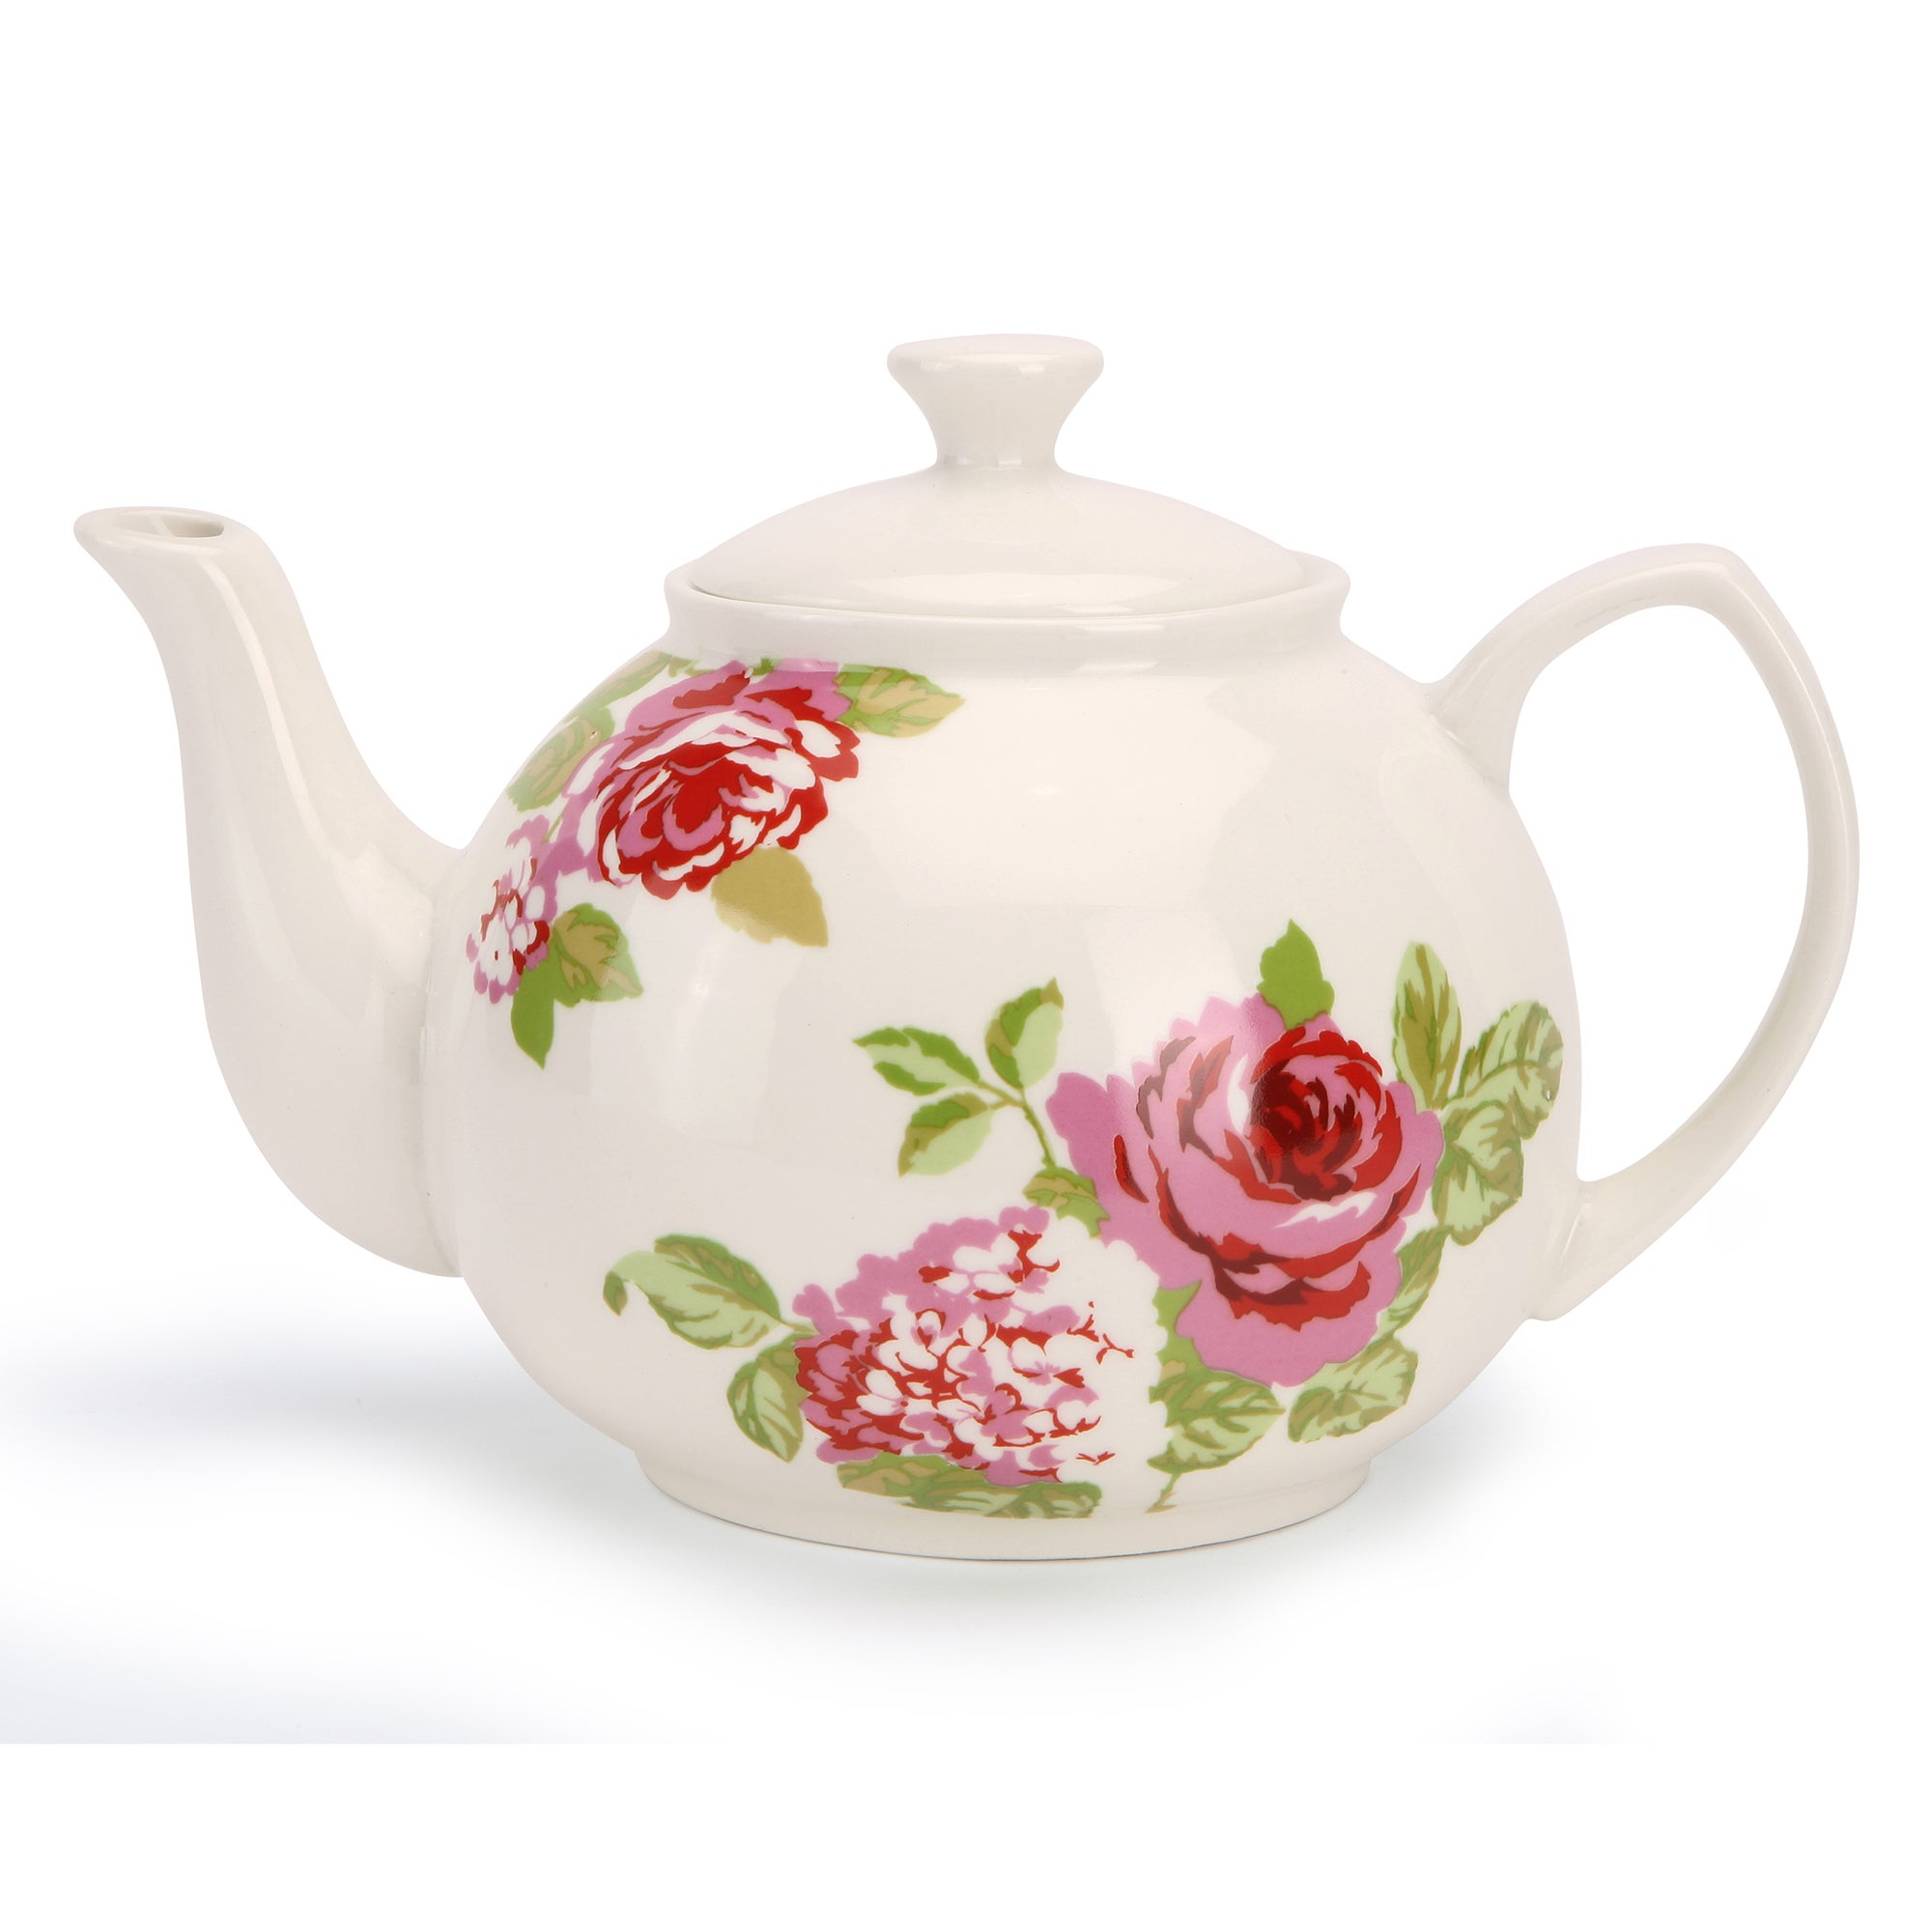 Rose and Ellis Clarendon Collection Teapot